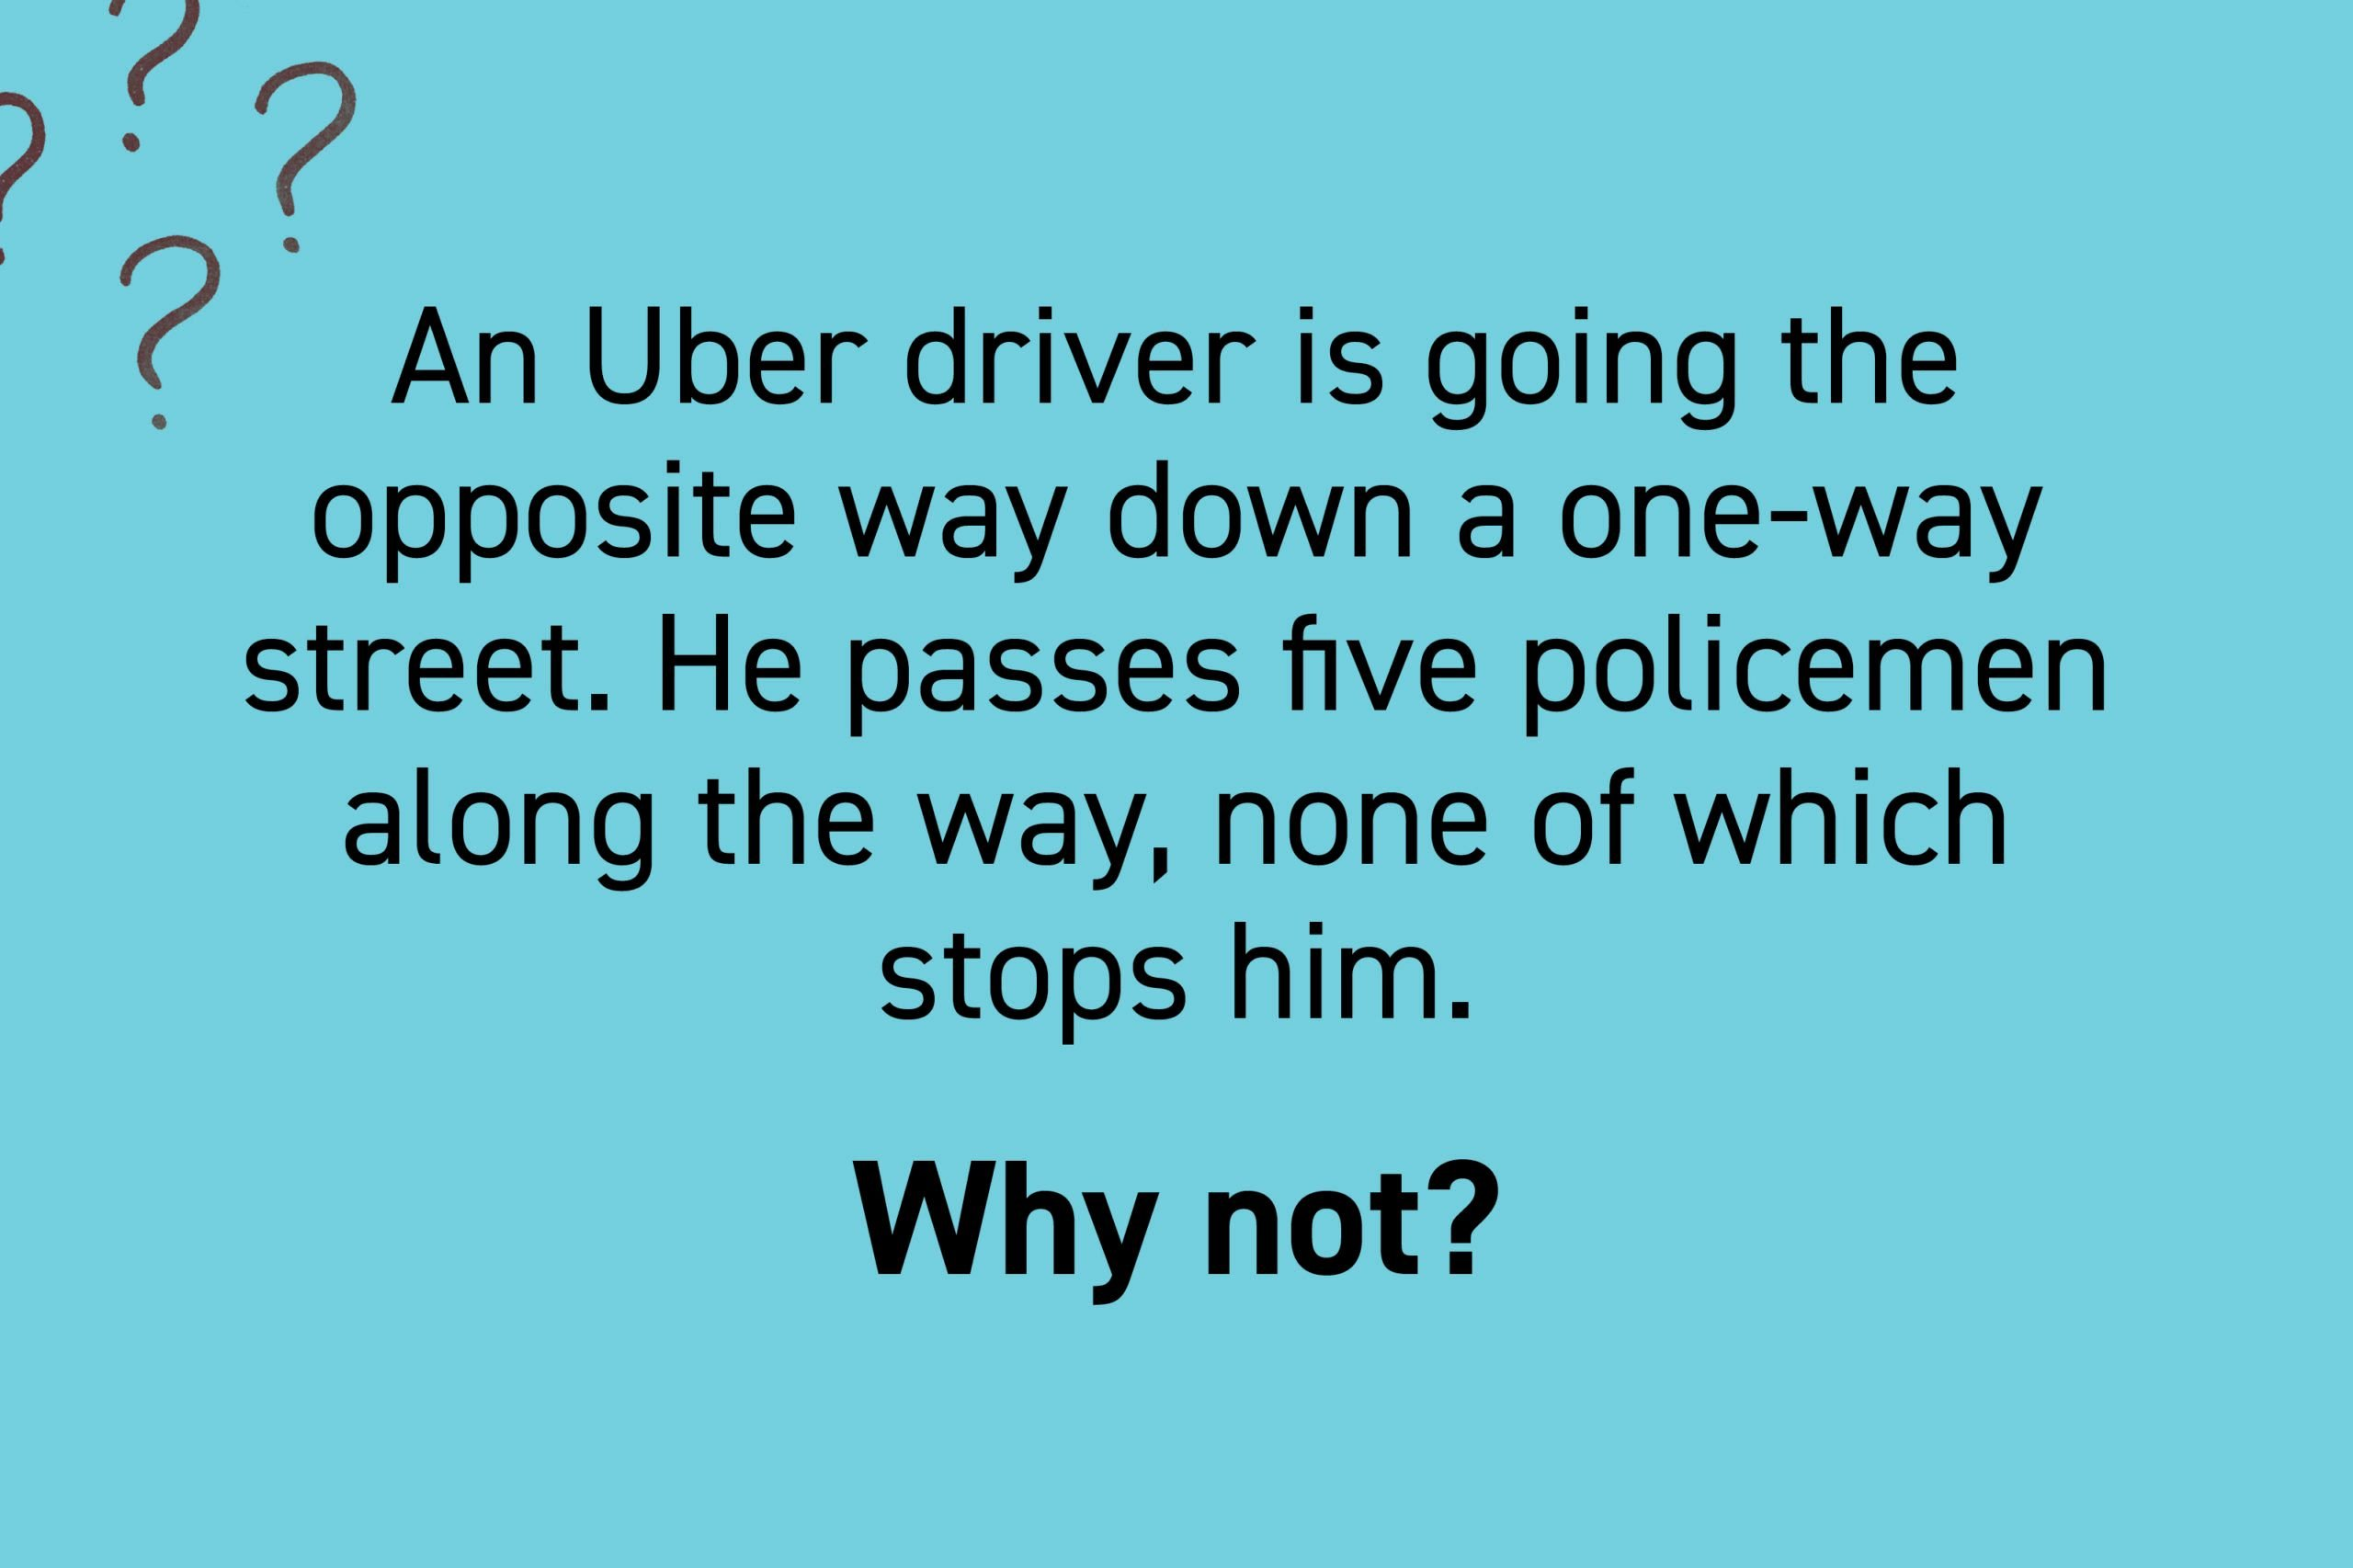 An Uber driver is going the opposite way down a one-way street. He passes five policemen along the way, none of which stops him. Why not?